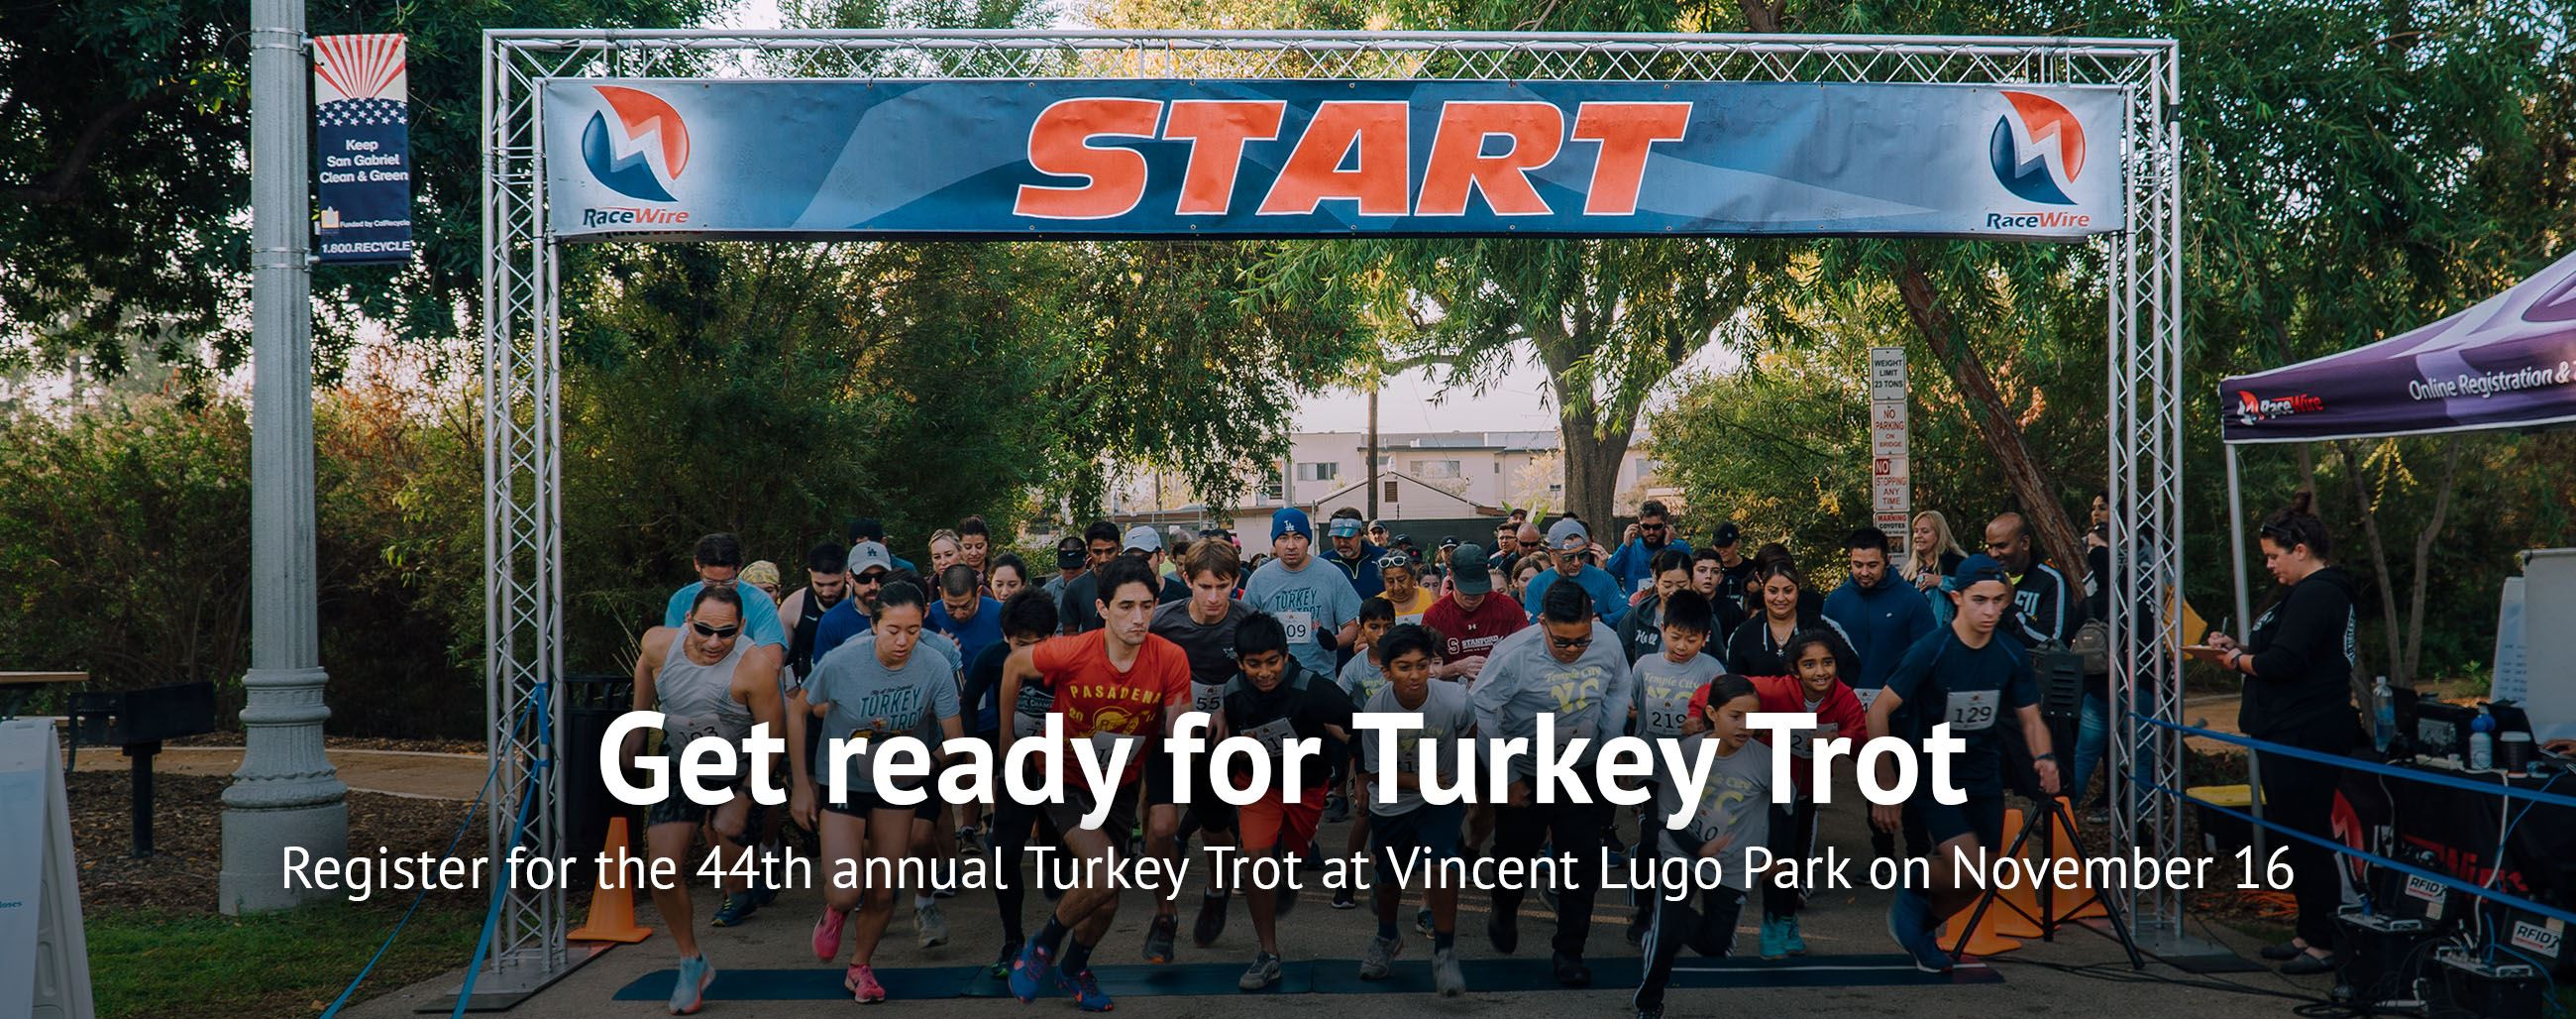 Turkey Trot - Register for the 44th annual Turkey Trot at Vincent Lugo Park on November 16